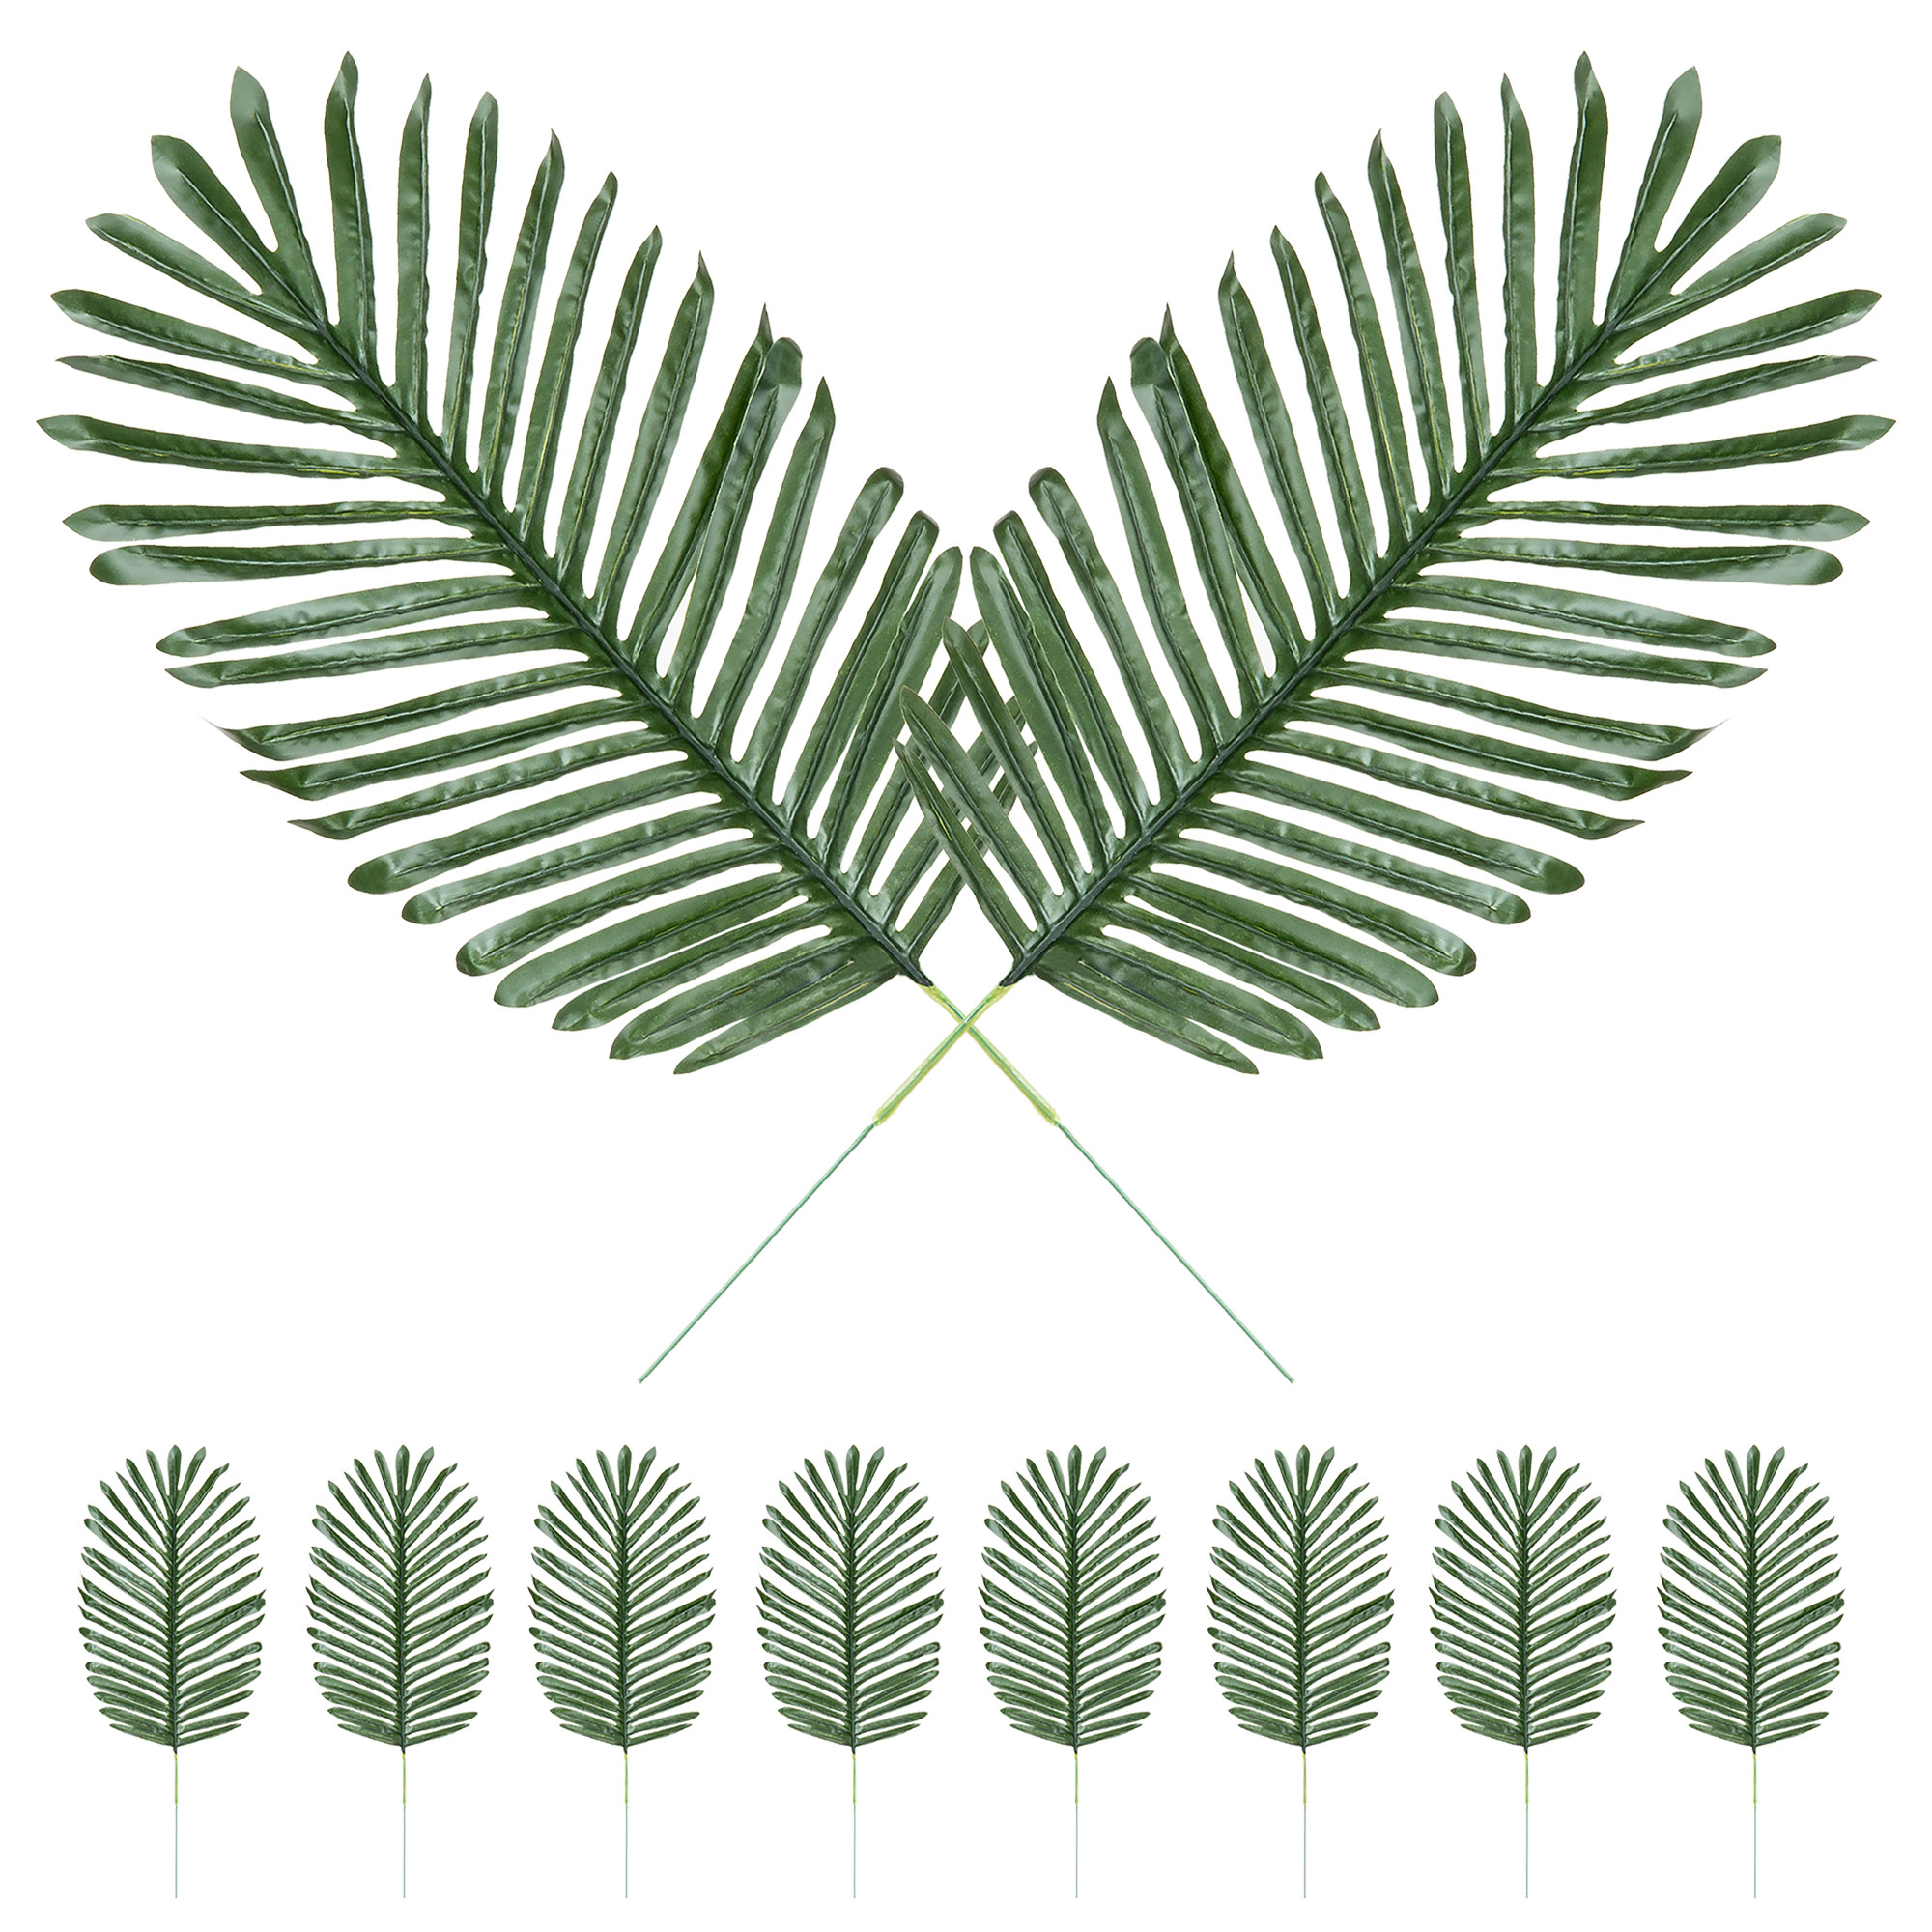 Best Choice Products Set of 10 23in Artificial Tropical Palm Tree Plant Leaves Decor for Home, Party, Wedding - Green